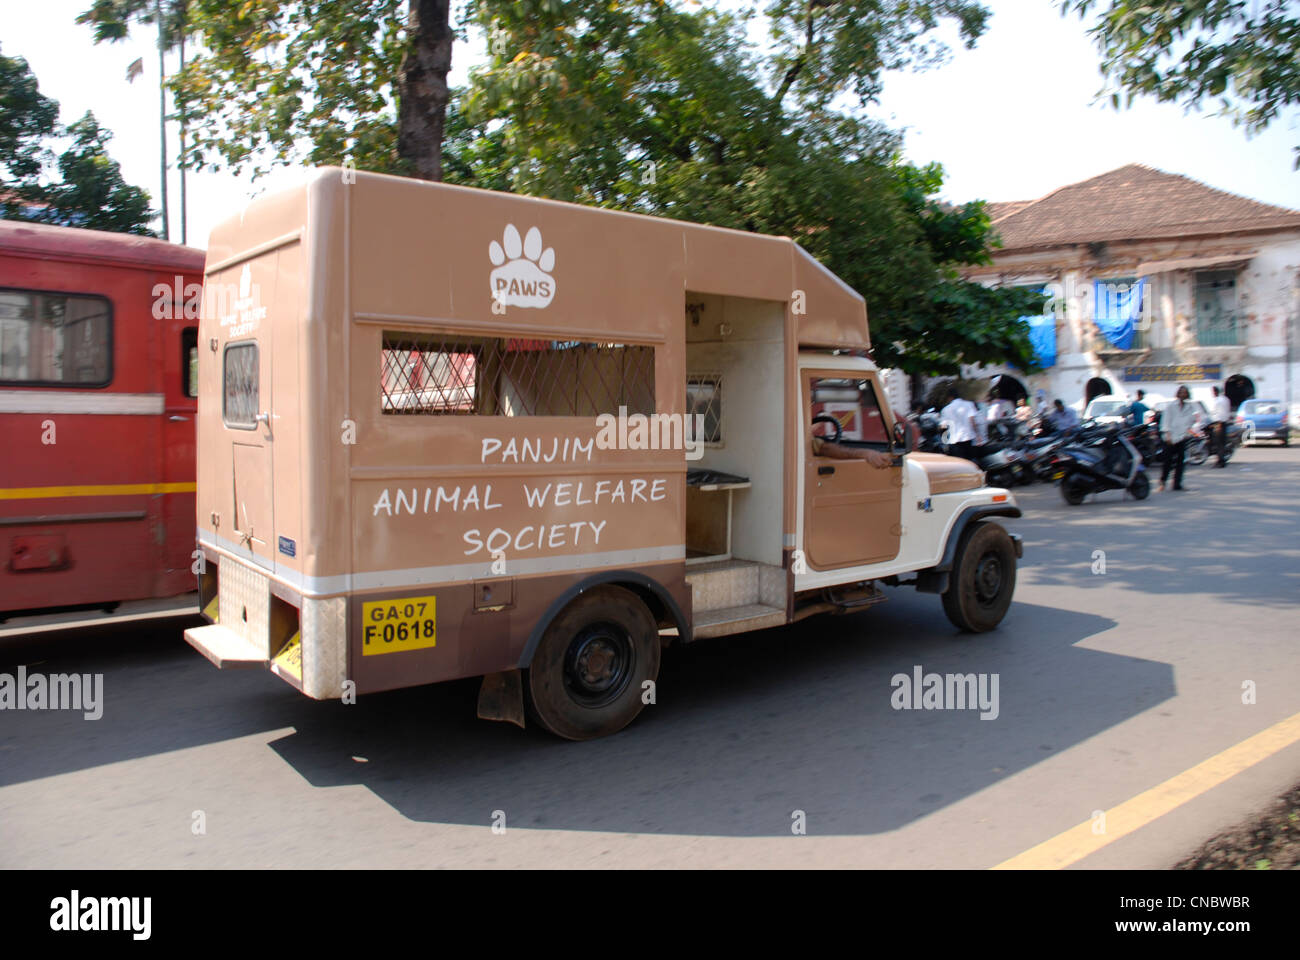 A vehicle for the Panjim Animal Welfare Society (PAWS) in the Goan capital of Panaji - Stock Image